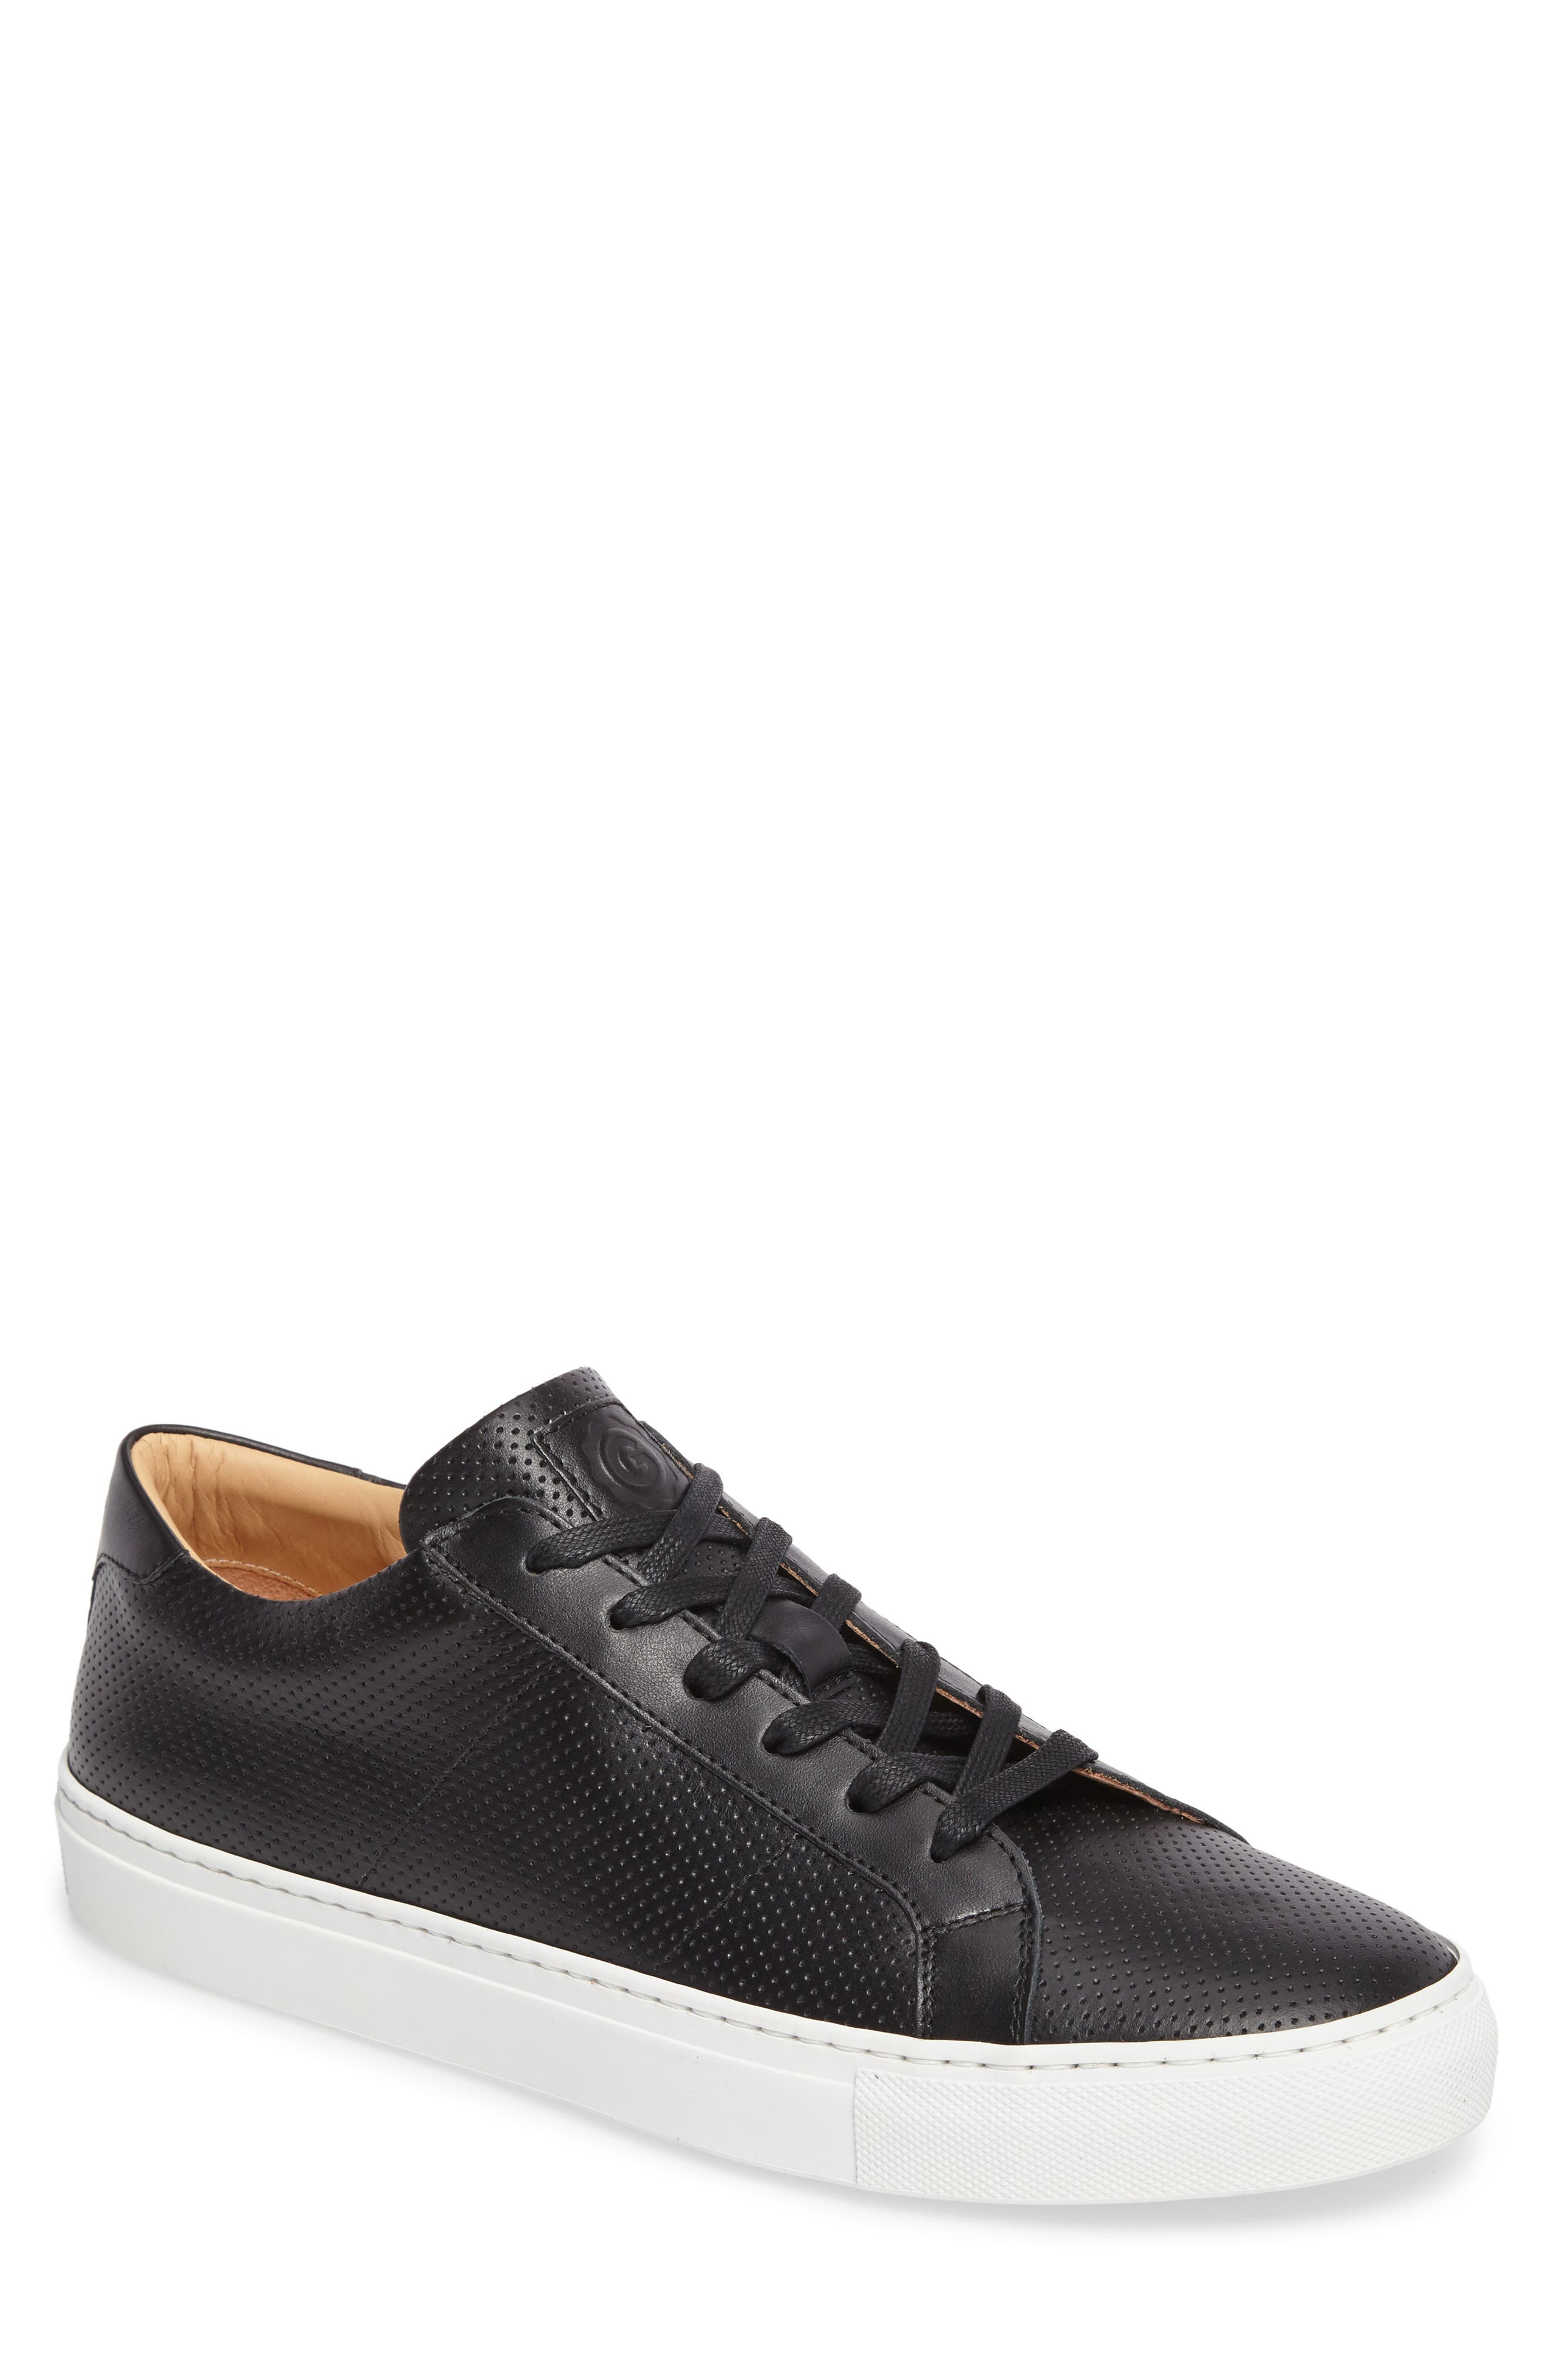 GREATS Royale Perforated Low Top